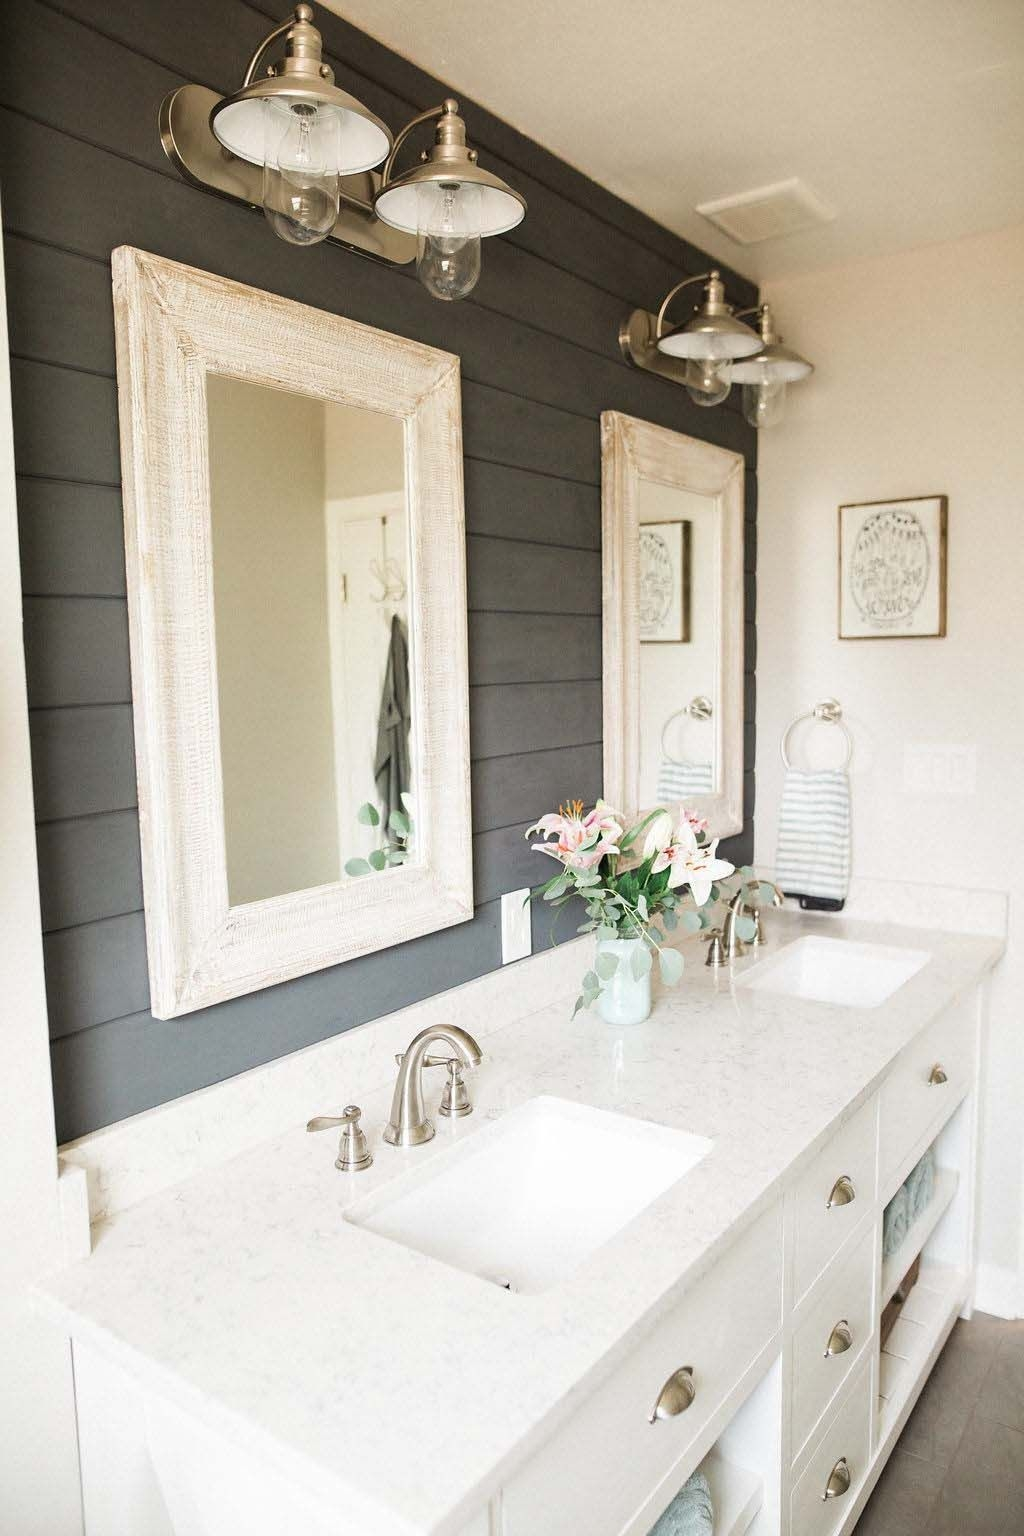 21 gorgeous farmhouse style bathrooms you will love rustic